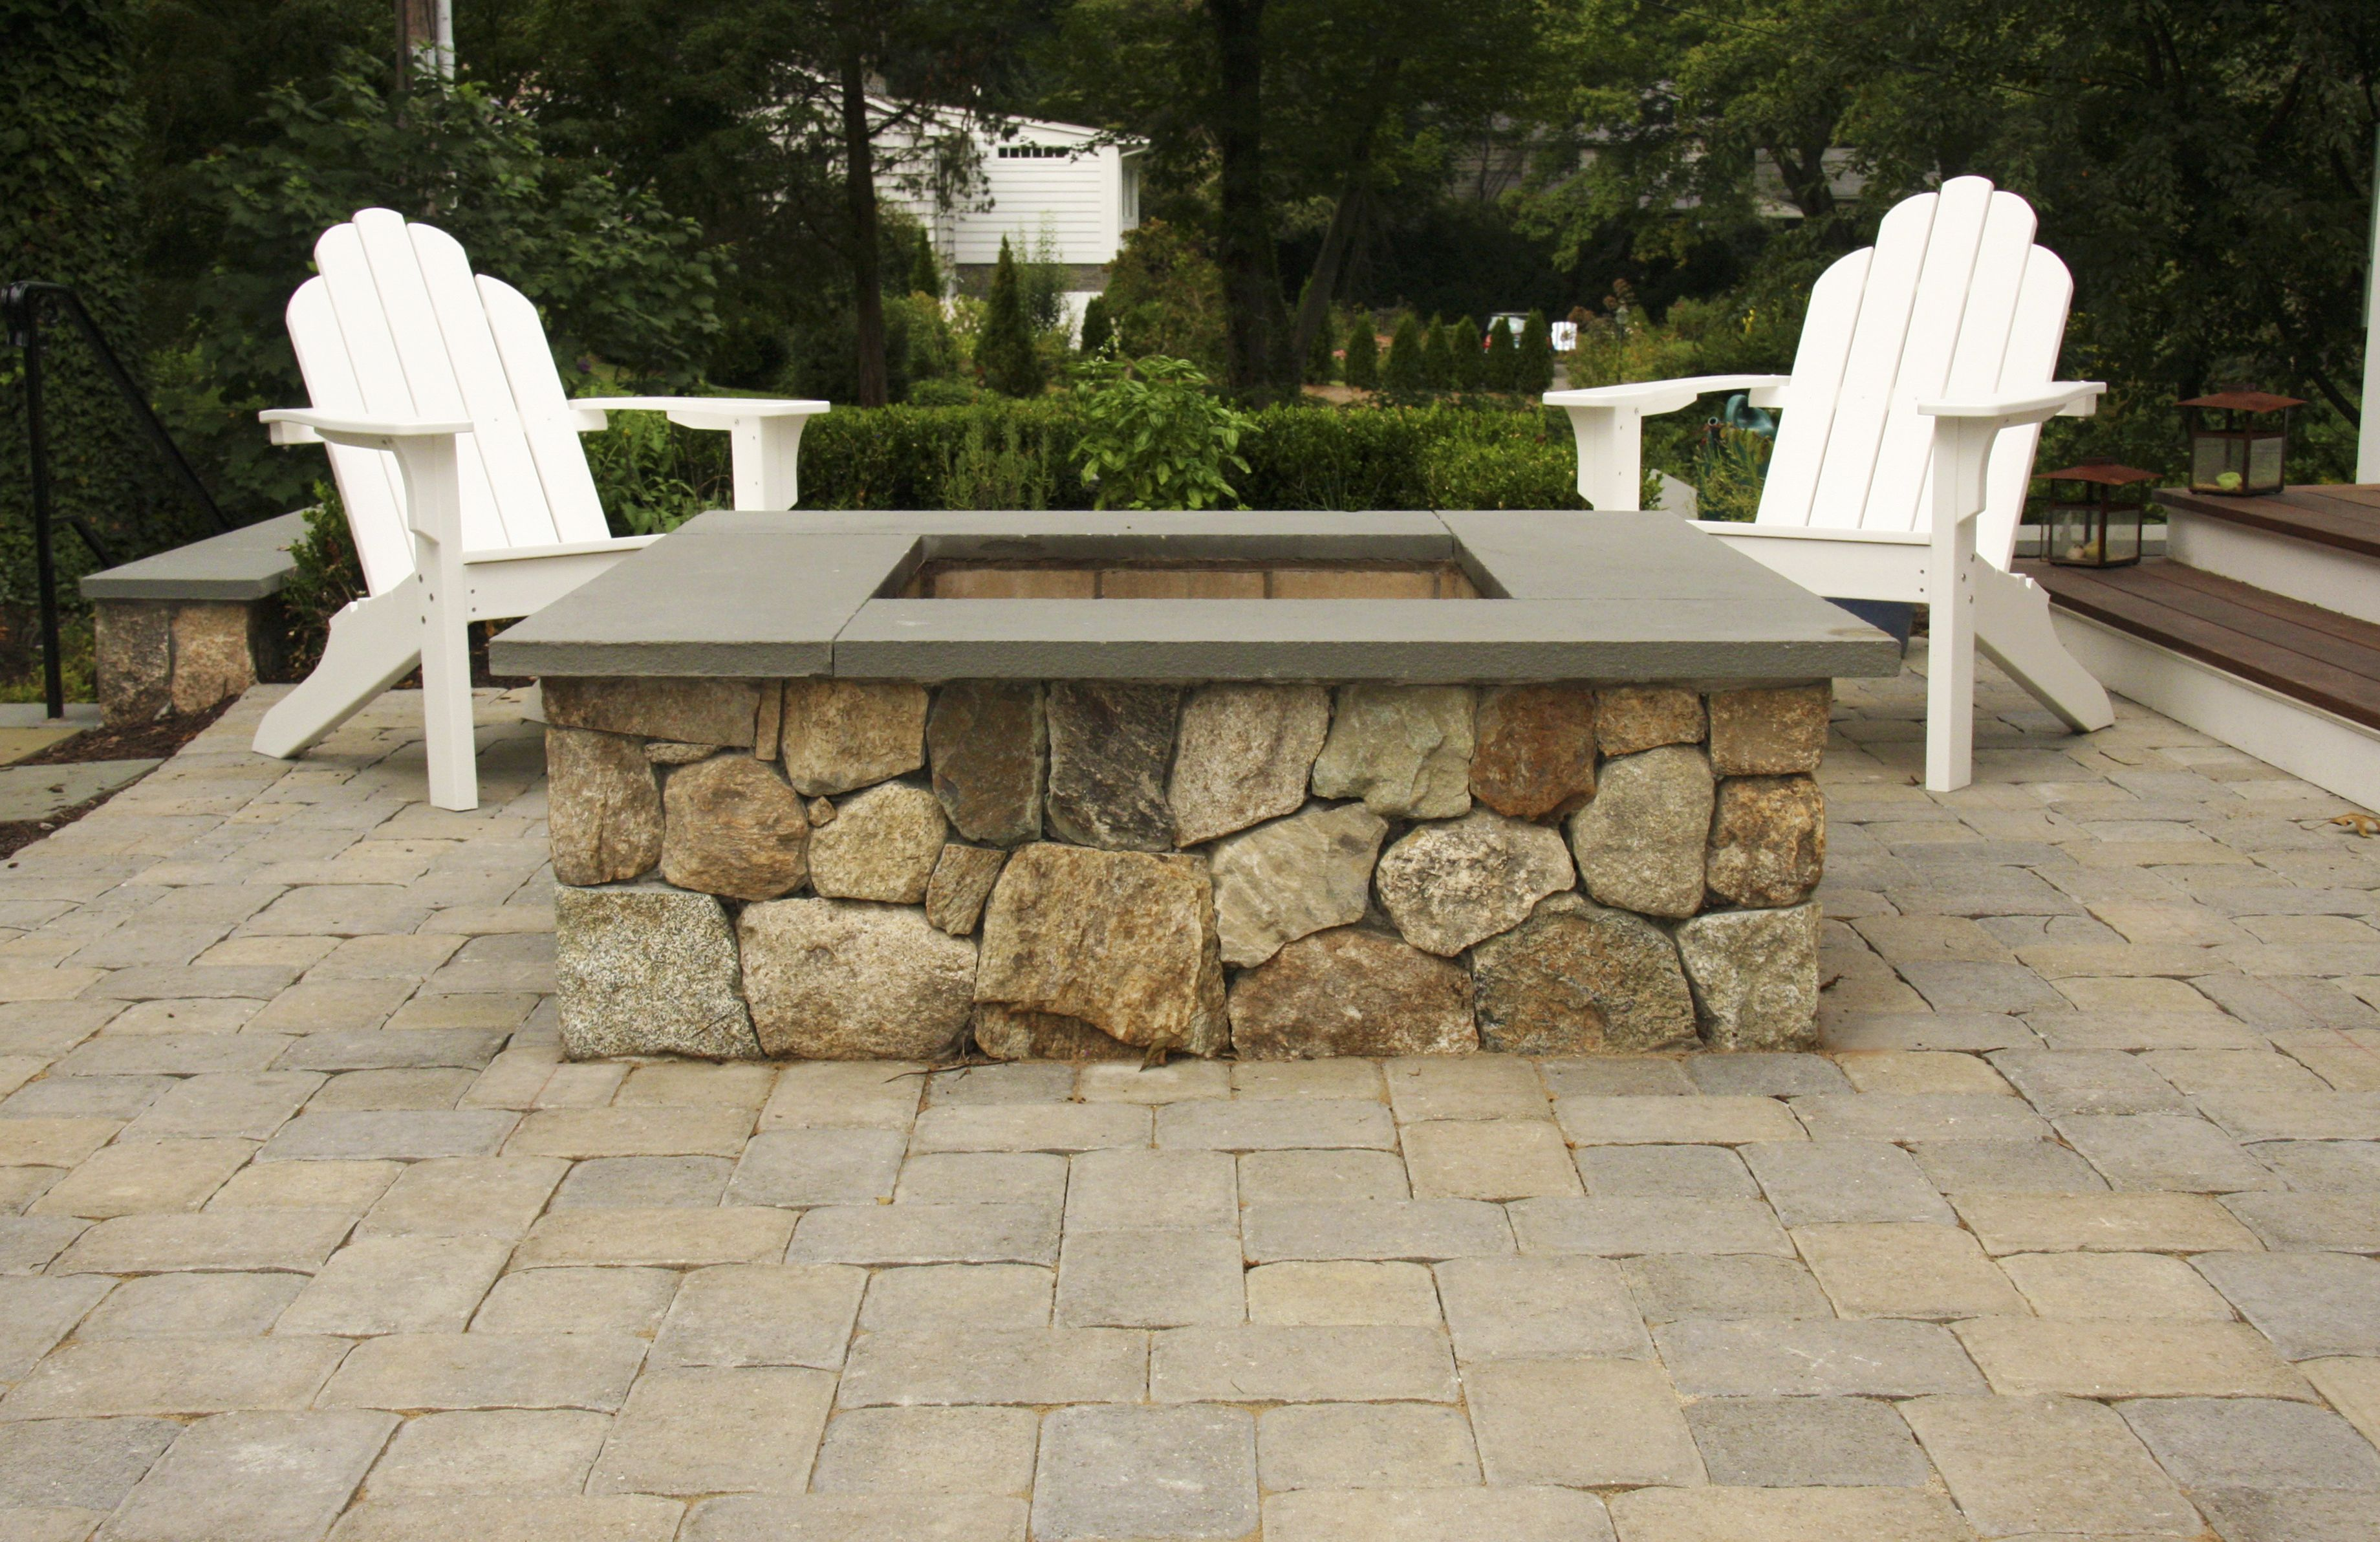 Square Fire Pits Like This One With Fieldstone And Bluestone Cap Provide More Gathering Space For Friend Fire Pit Backyard Outdoor Fire Wood Burning Fire Pit